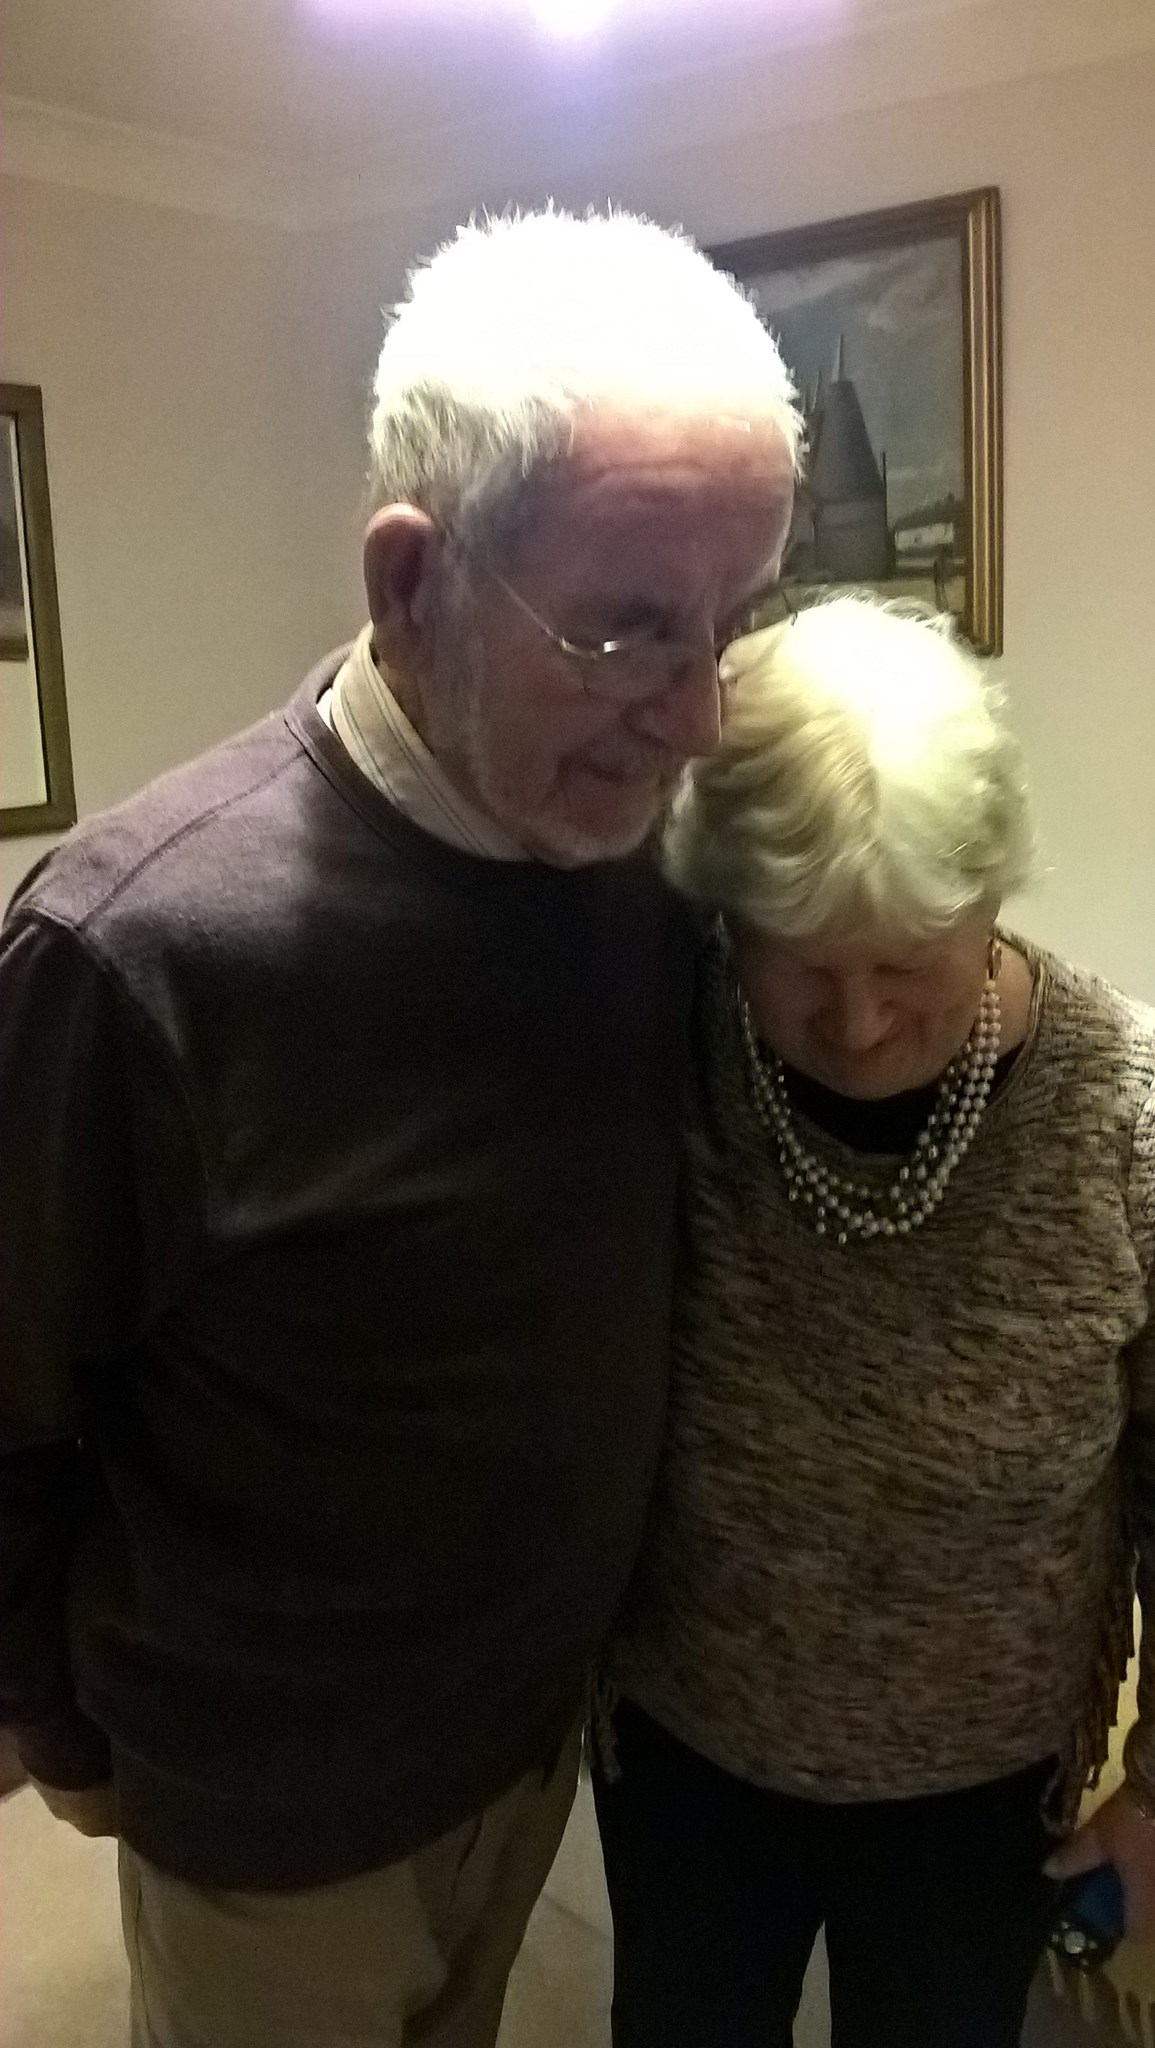 Such a loving picture of Mum and Dad. So happy together...